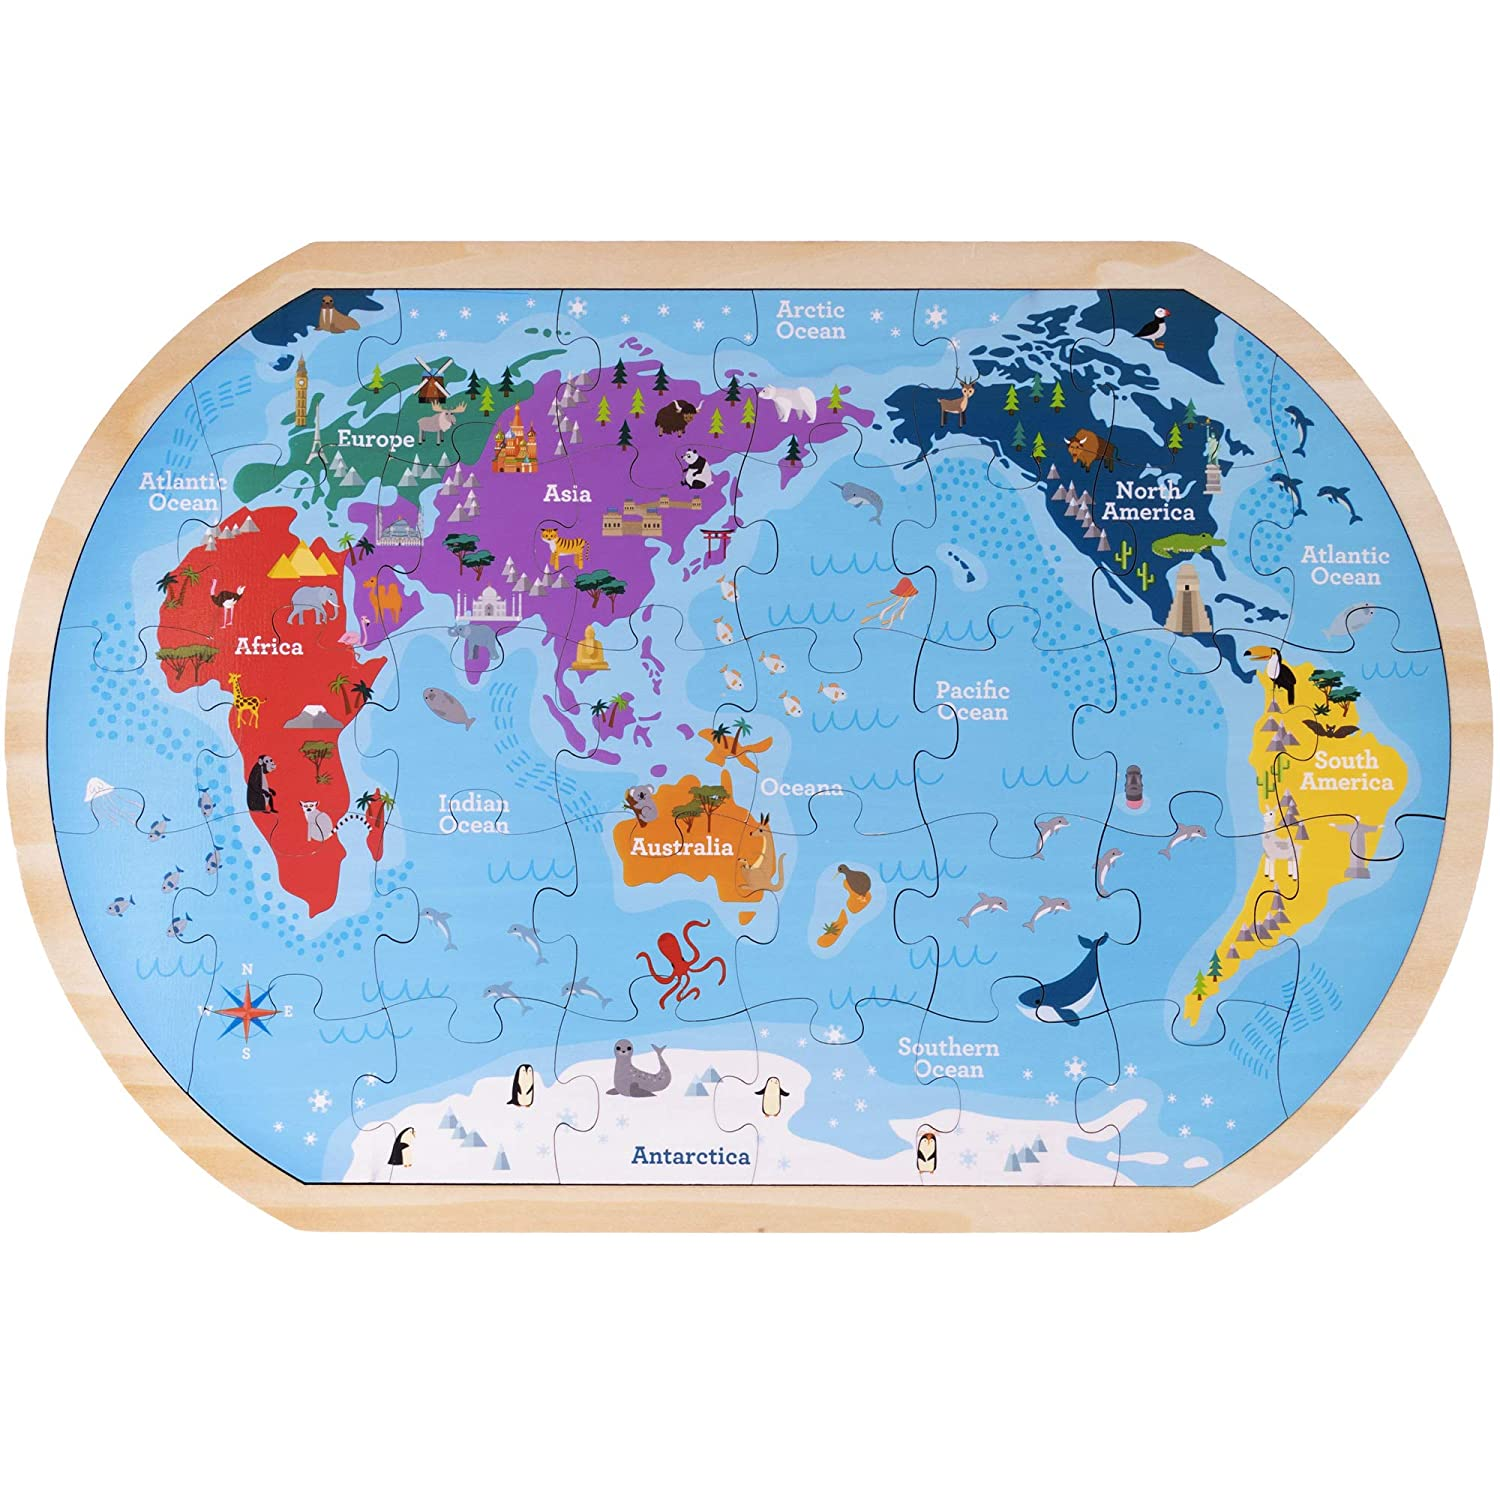 A picture of the whole world map